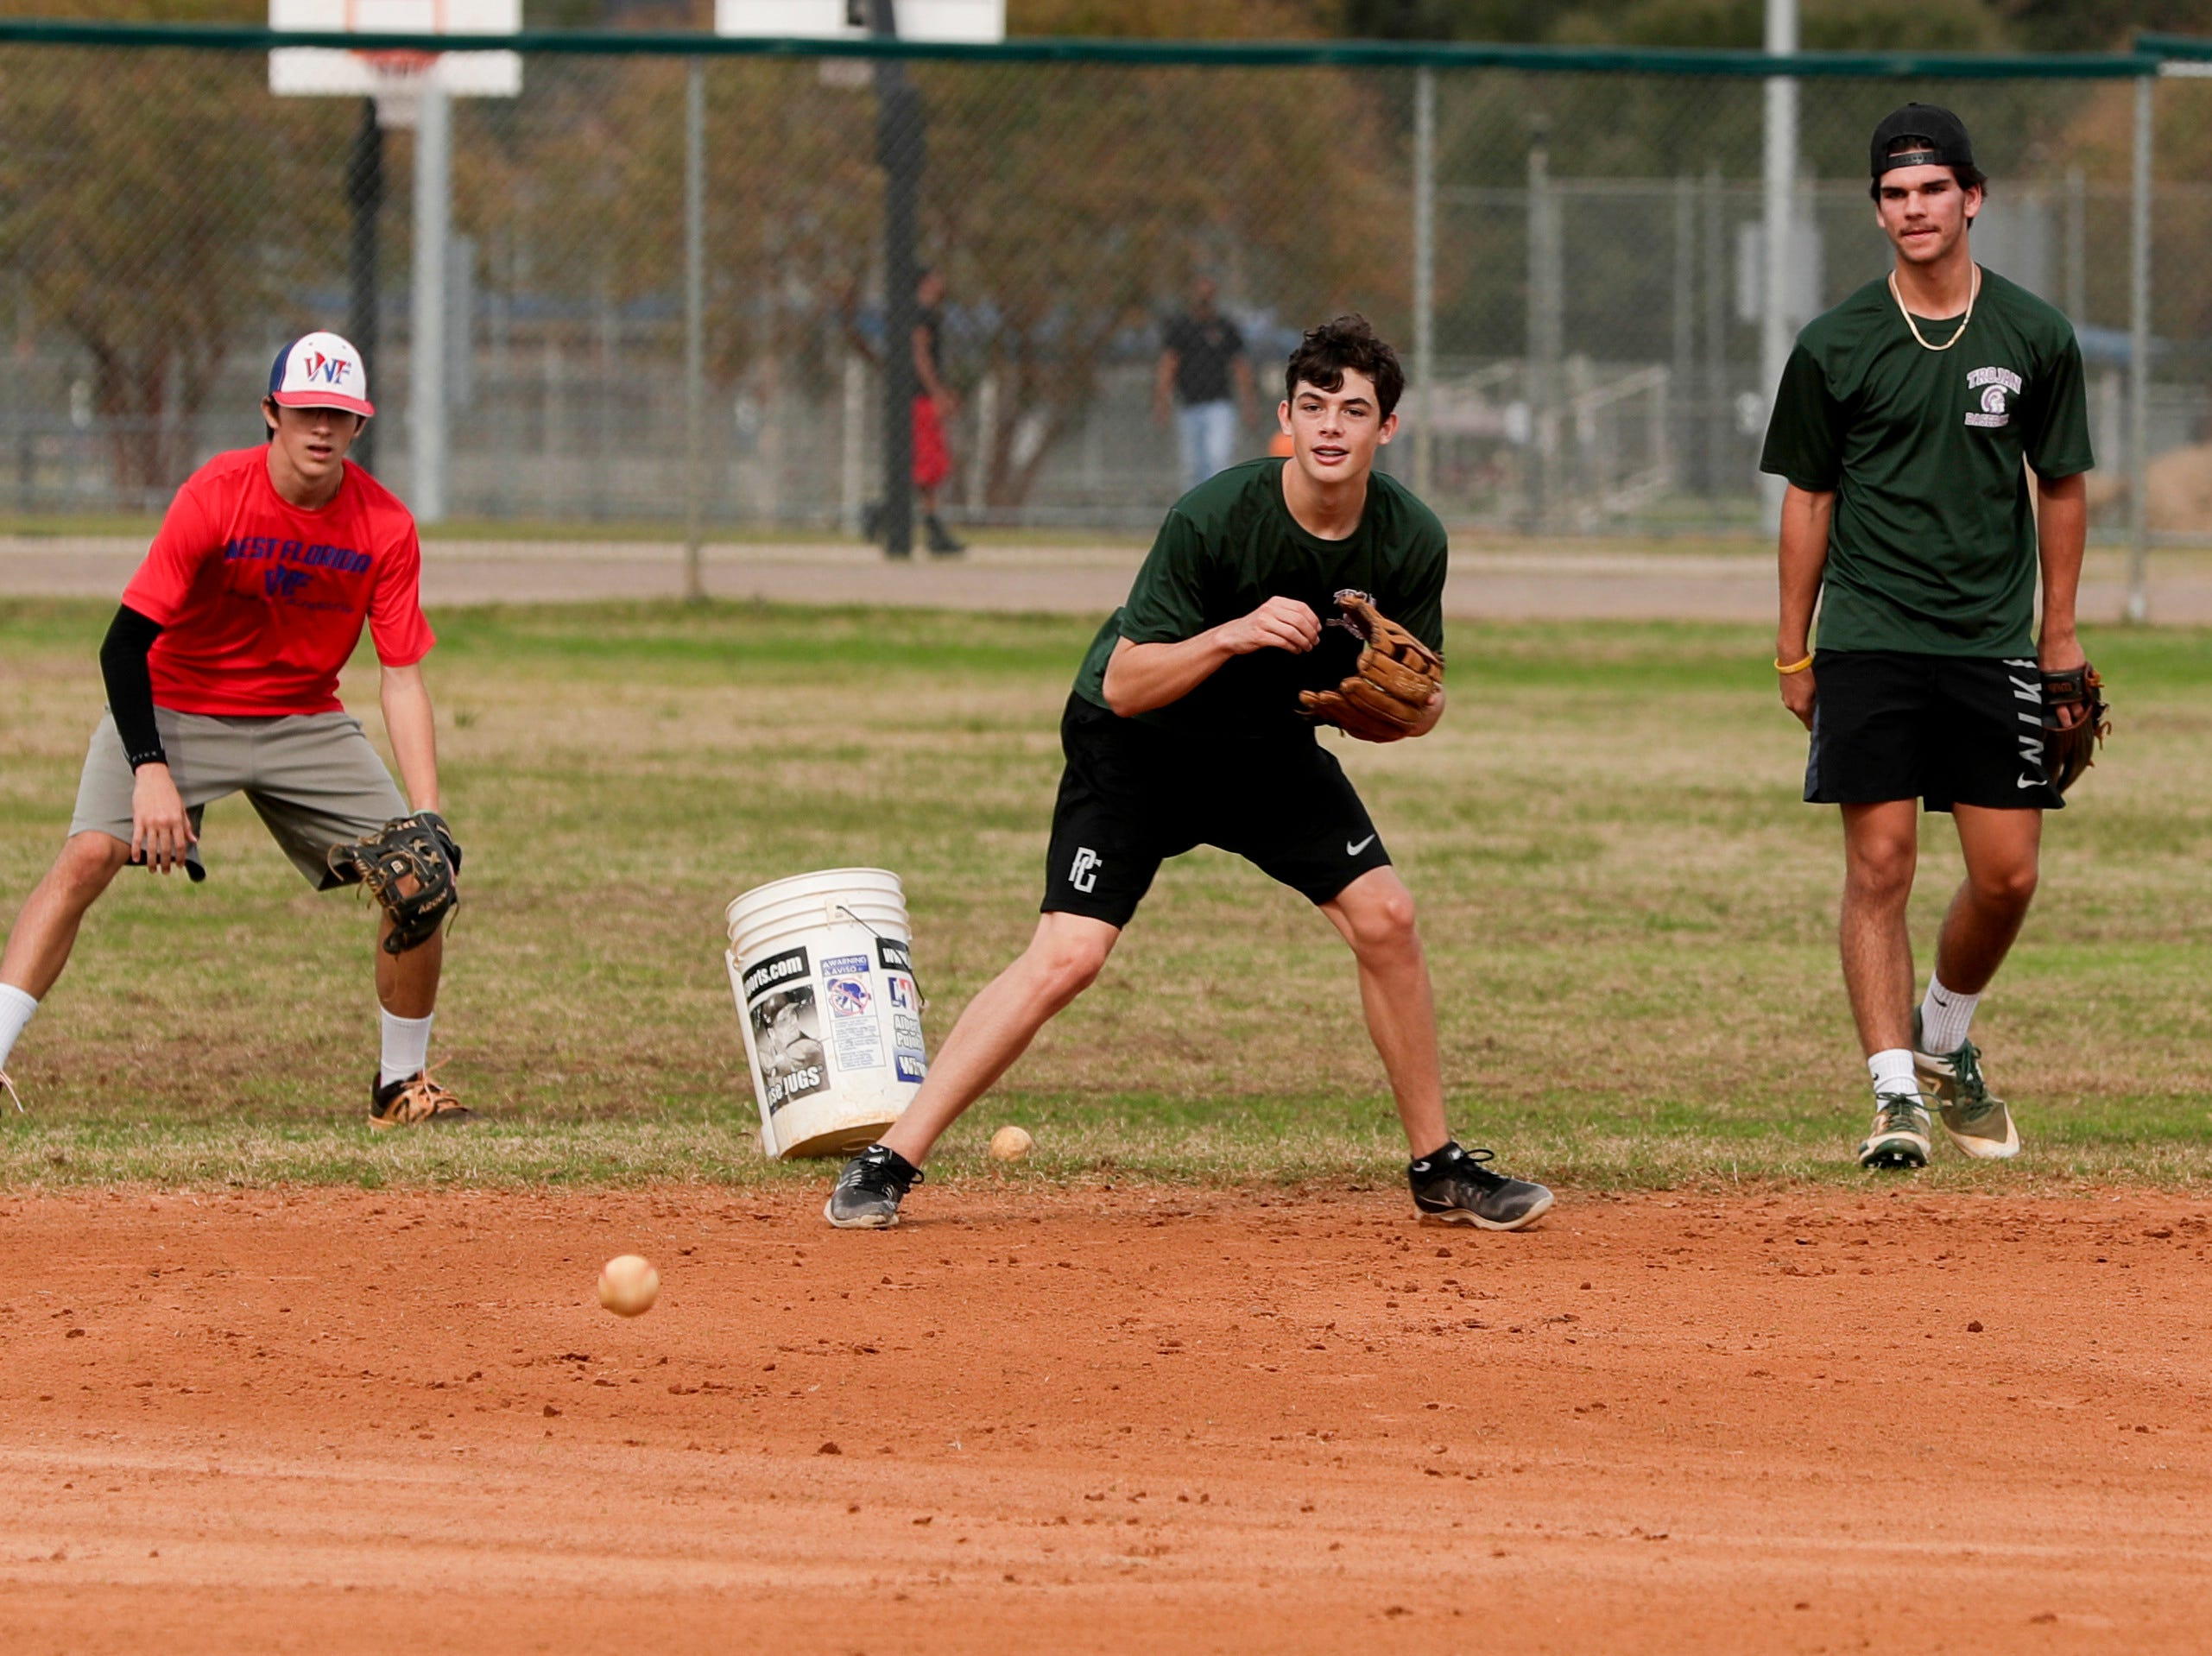 Stephen Jensen, 14, left, Tristan Harley, 15 and Connor Majors, 15, Lincoln High School baseball players, practice fielding balls at Tom Brown Park in Tallahassee as temperatures reached about 75 degrees midday Wednesday, Jan. 2, 2019.